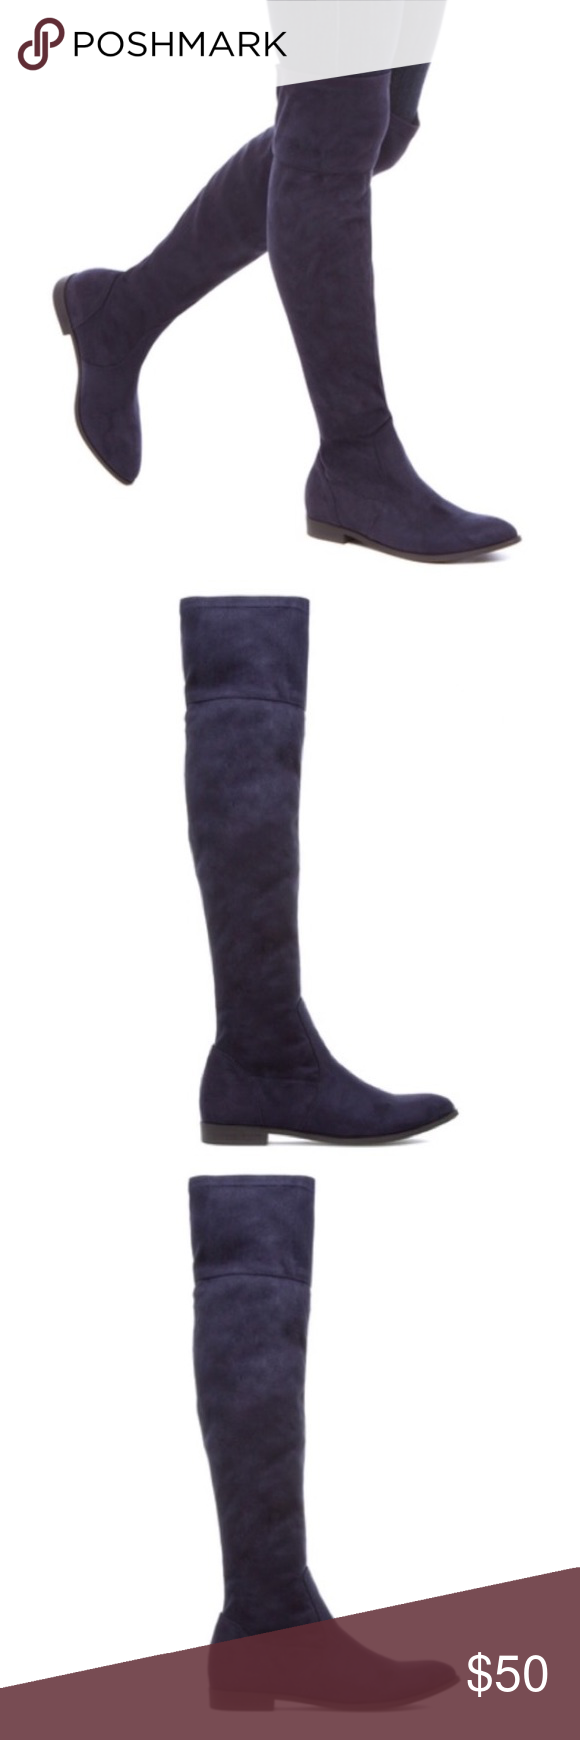 a803b0d8b Navy blue knee high boots women s size 8 Brand new Shoe Dazzle Shoes Over  the Knee Boots